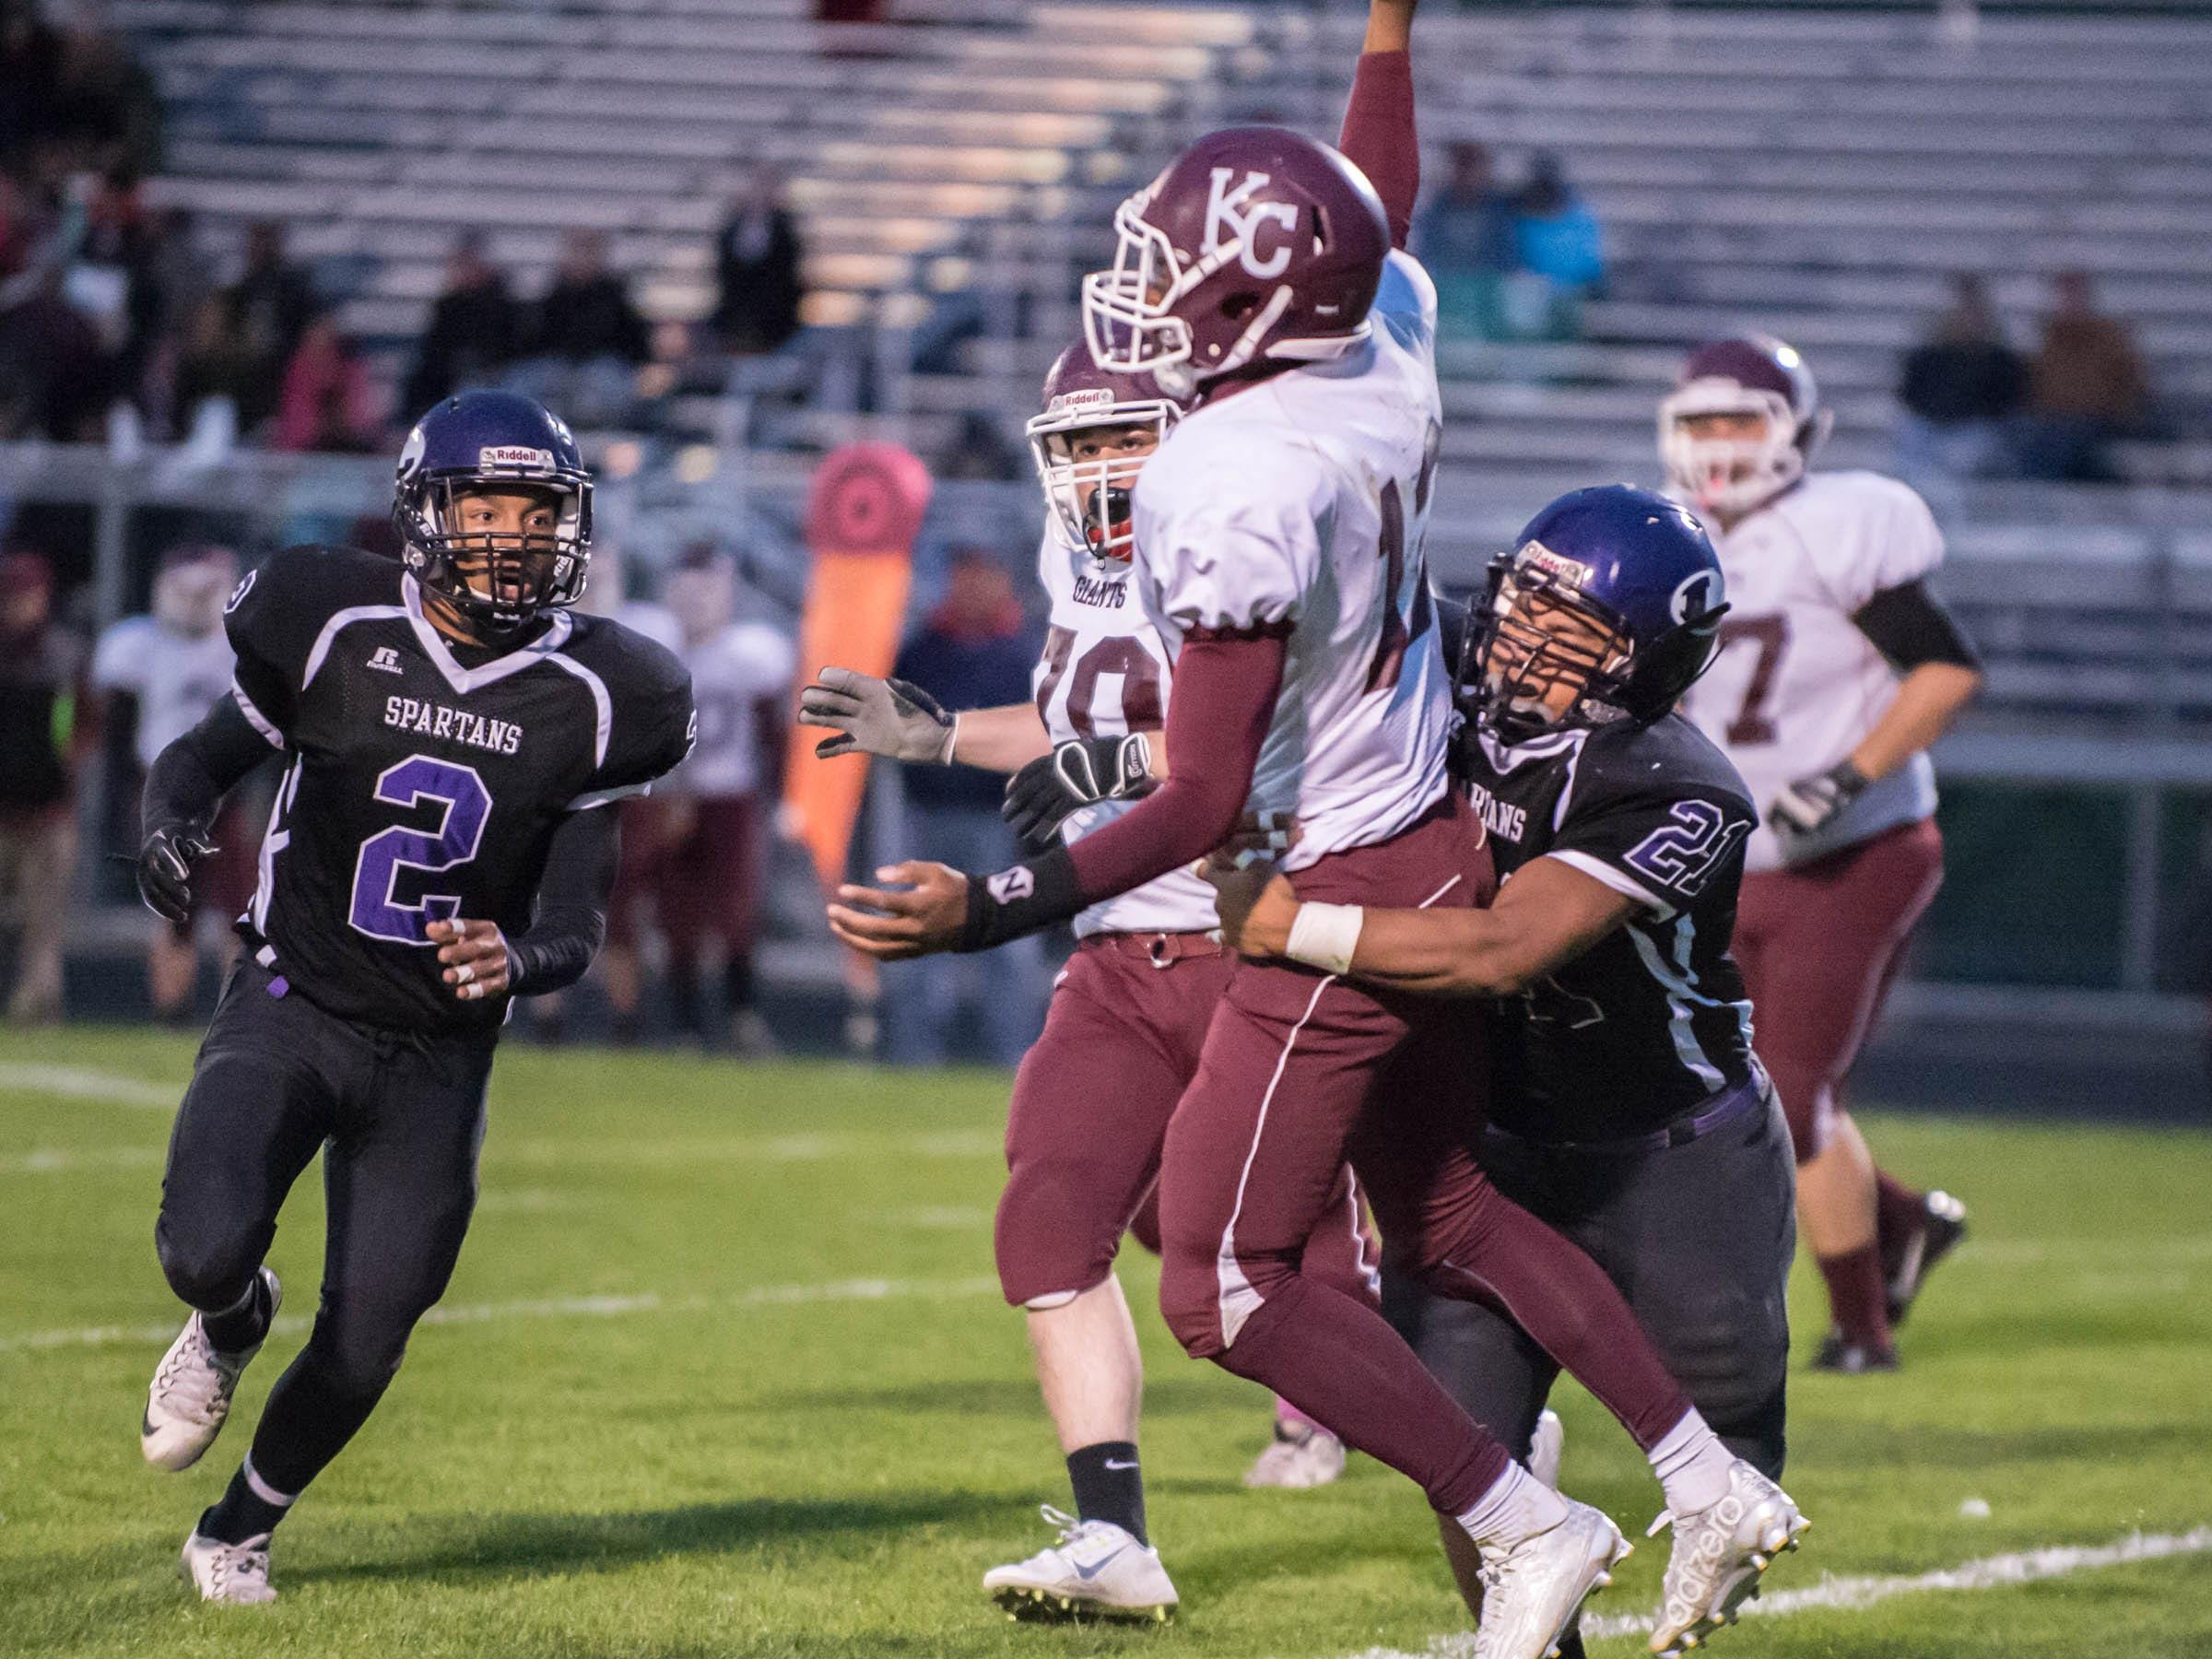 Lakeview's William Dean gets the sack against Kalamazoo Central Friday evening.